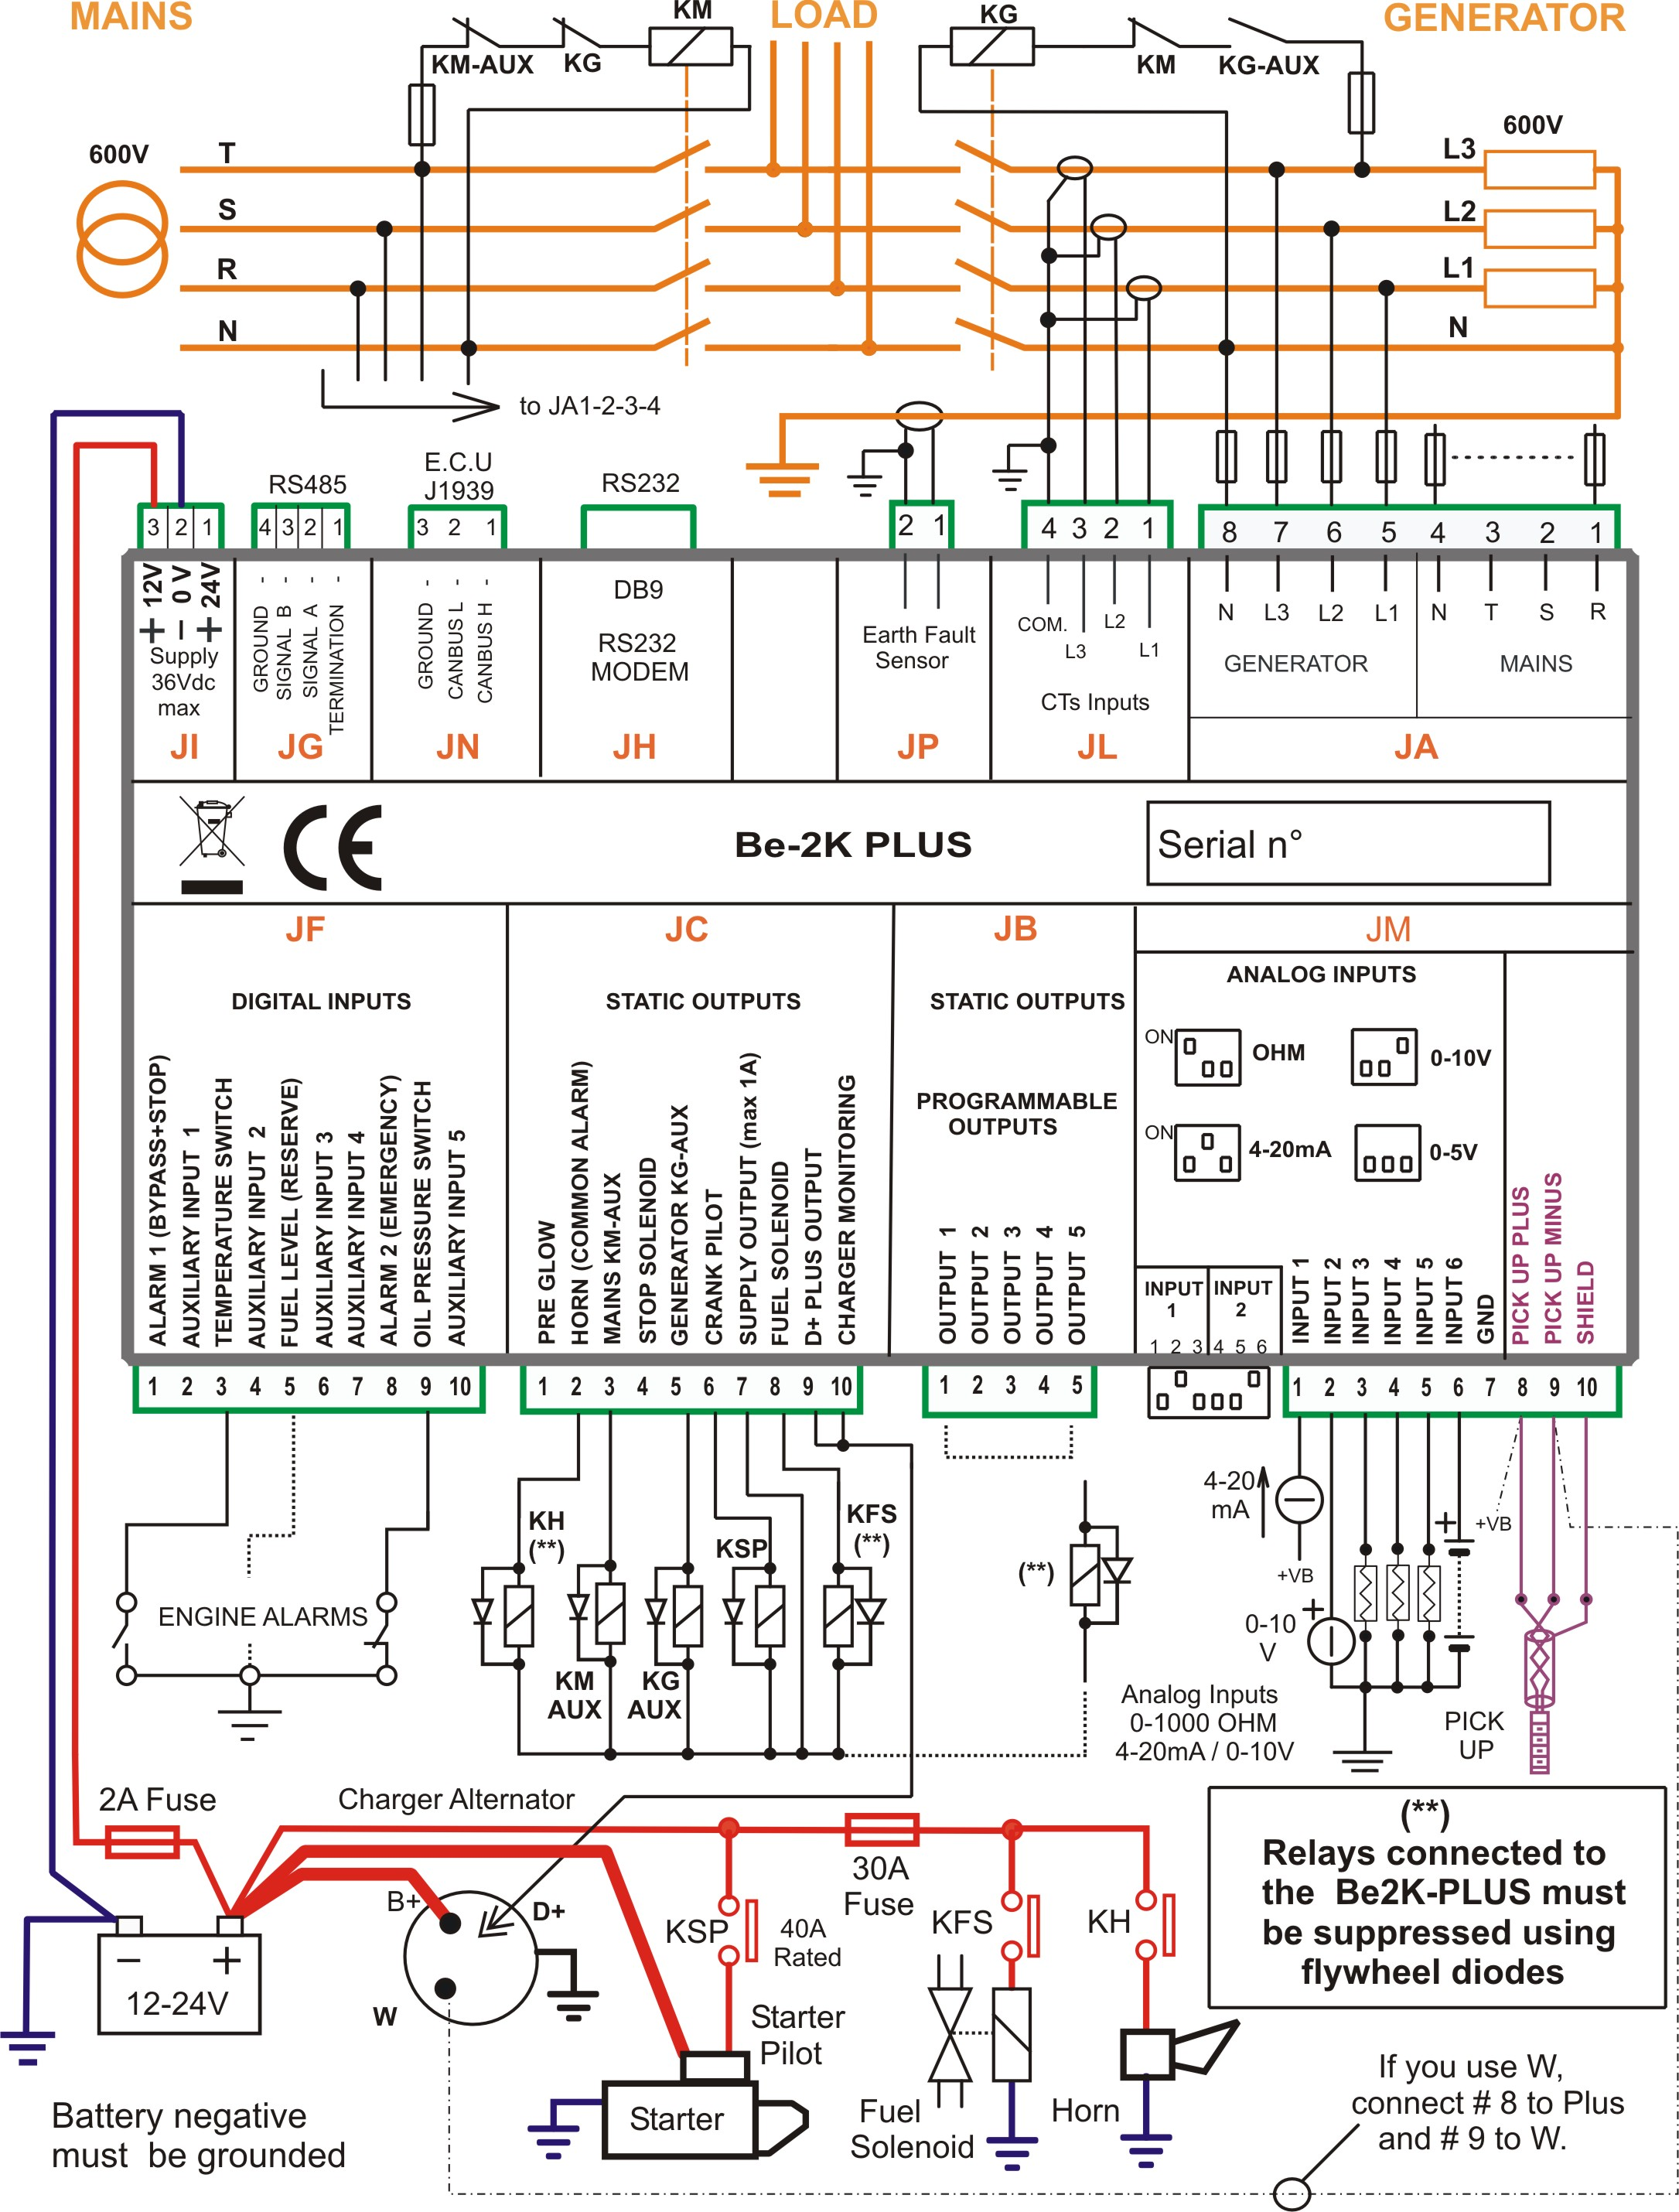 wiring diagram for generator control panel wiring amf control panel circuit diagram images on wiring diagram for generator control panel